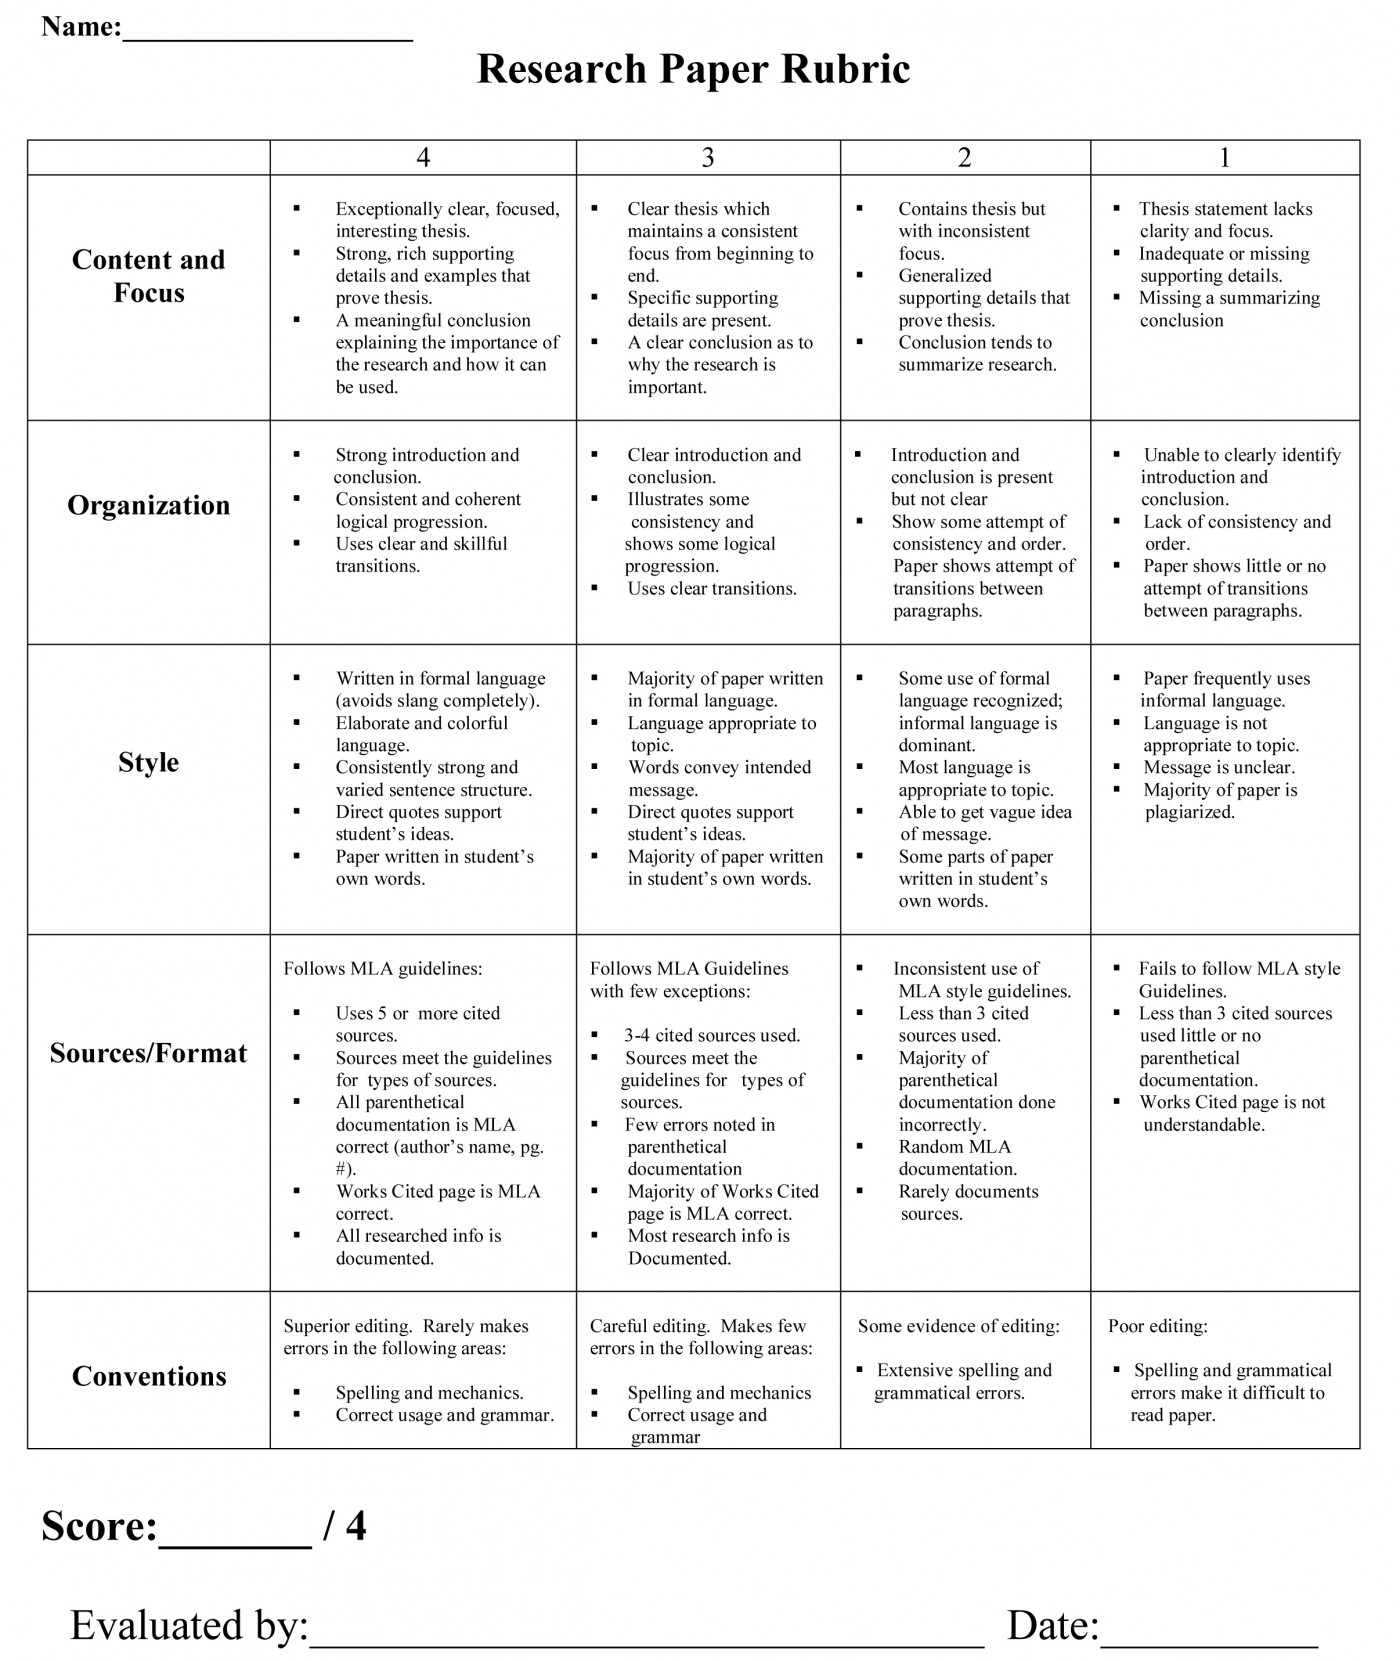 017 Research Paper Rubric Free Sample Online Stirring Papers Submission Of Pdf Psychology 1400